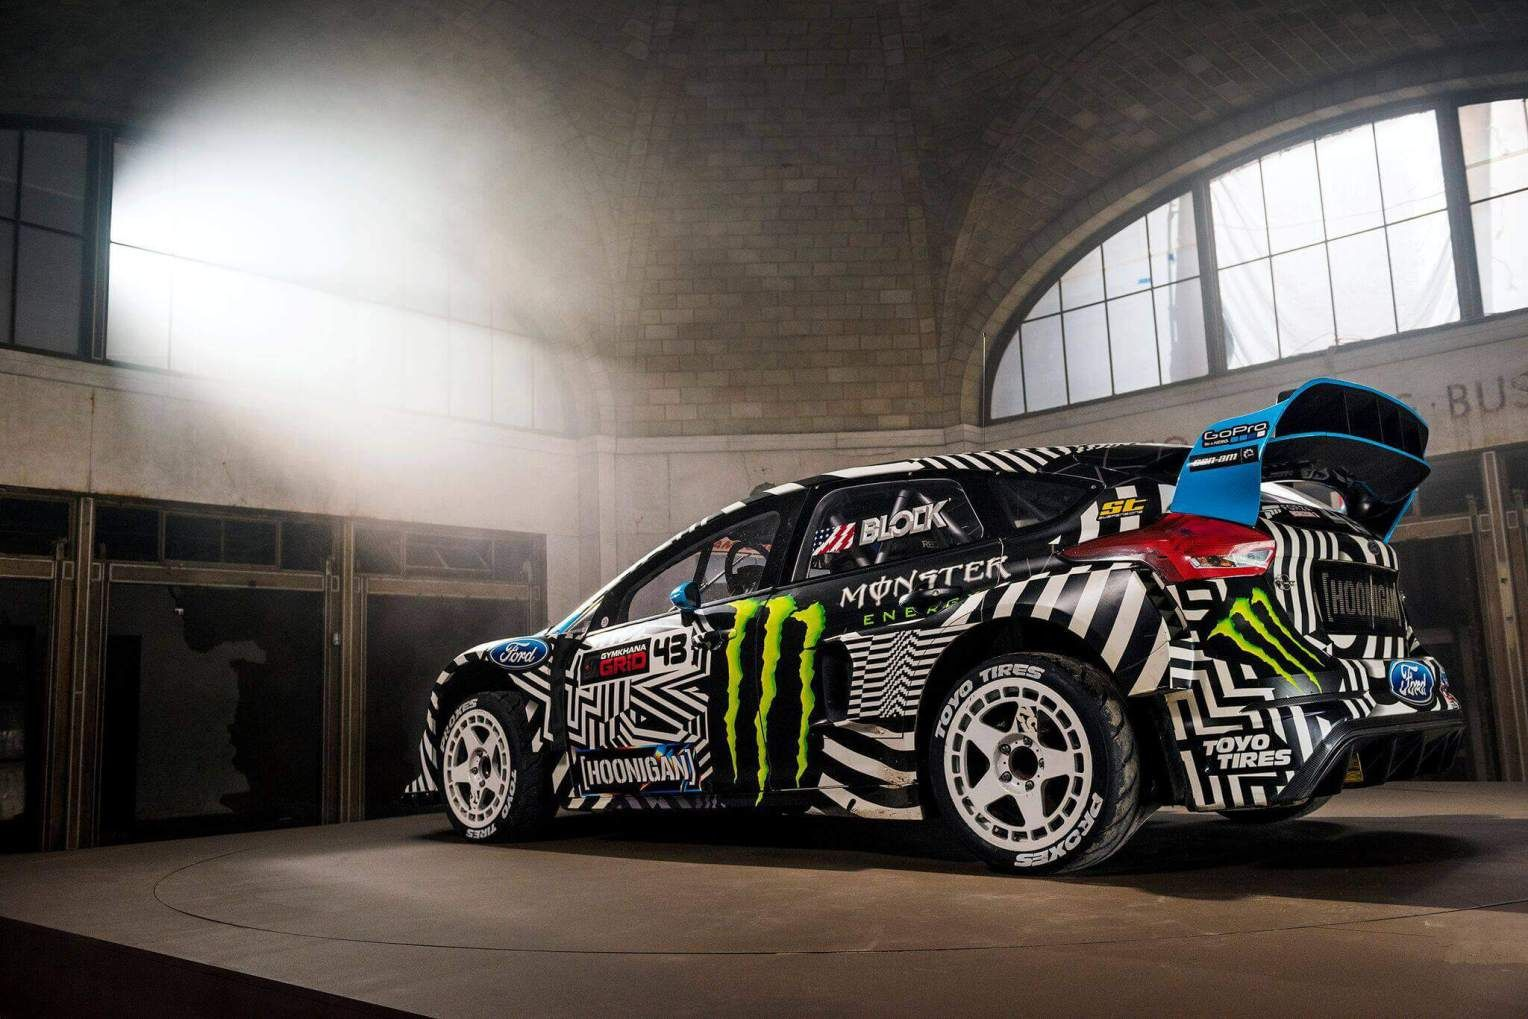 Ken block s 2013 hoonigan racing division livery shipping container project ken block pinterest ken block cars and ford lincoln mercury